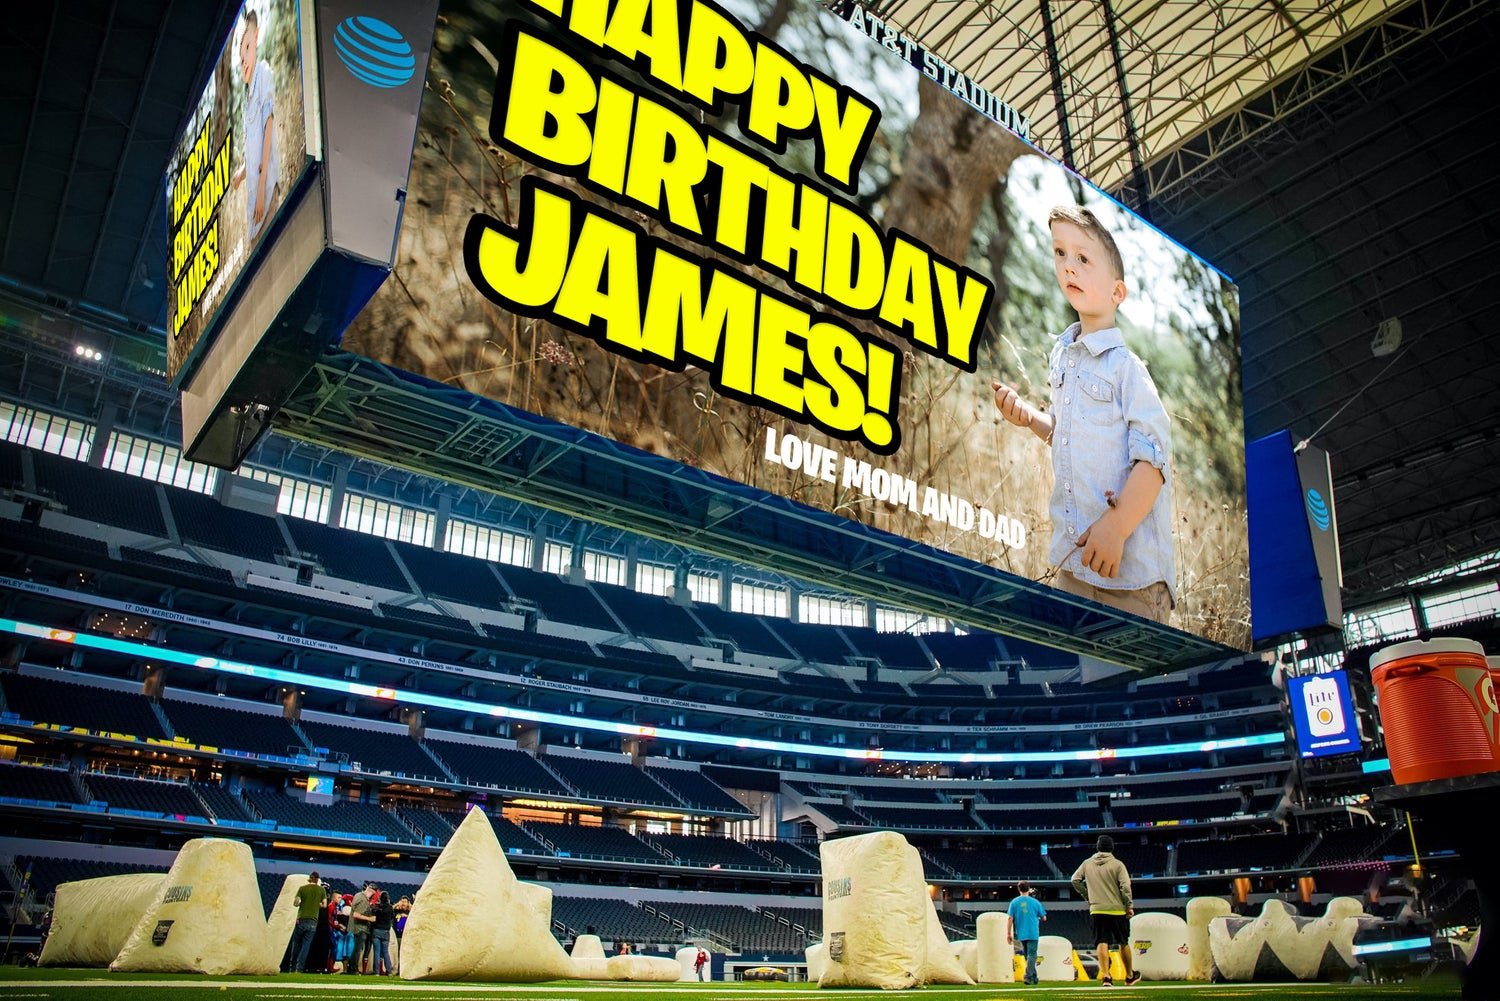 Image of JENB5 Personalized Image on AT&T Stadium Screen